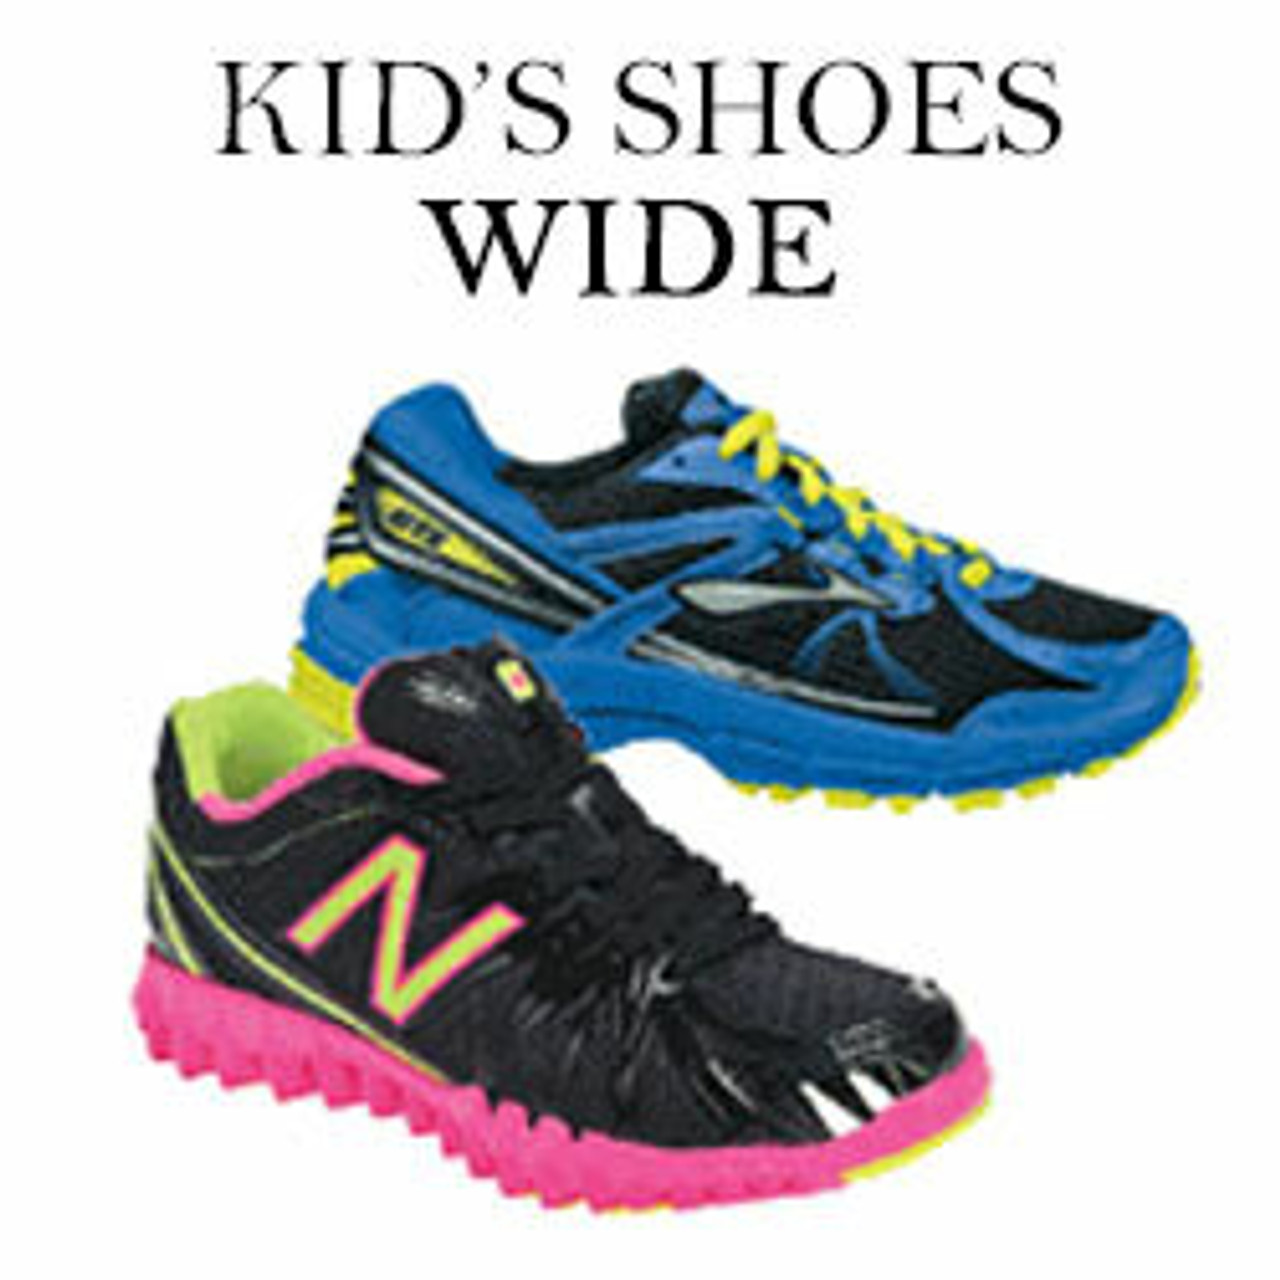 Children's Shoes For Wide Feet | Kids Wide Shoes